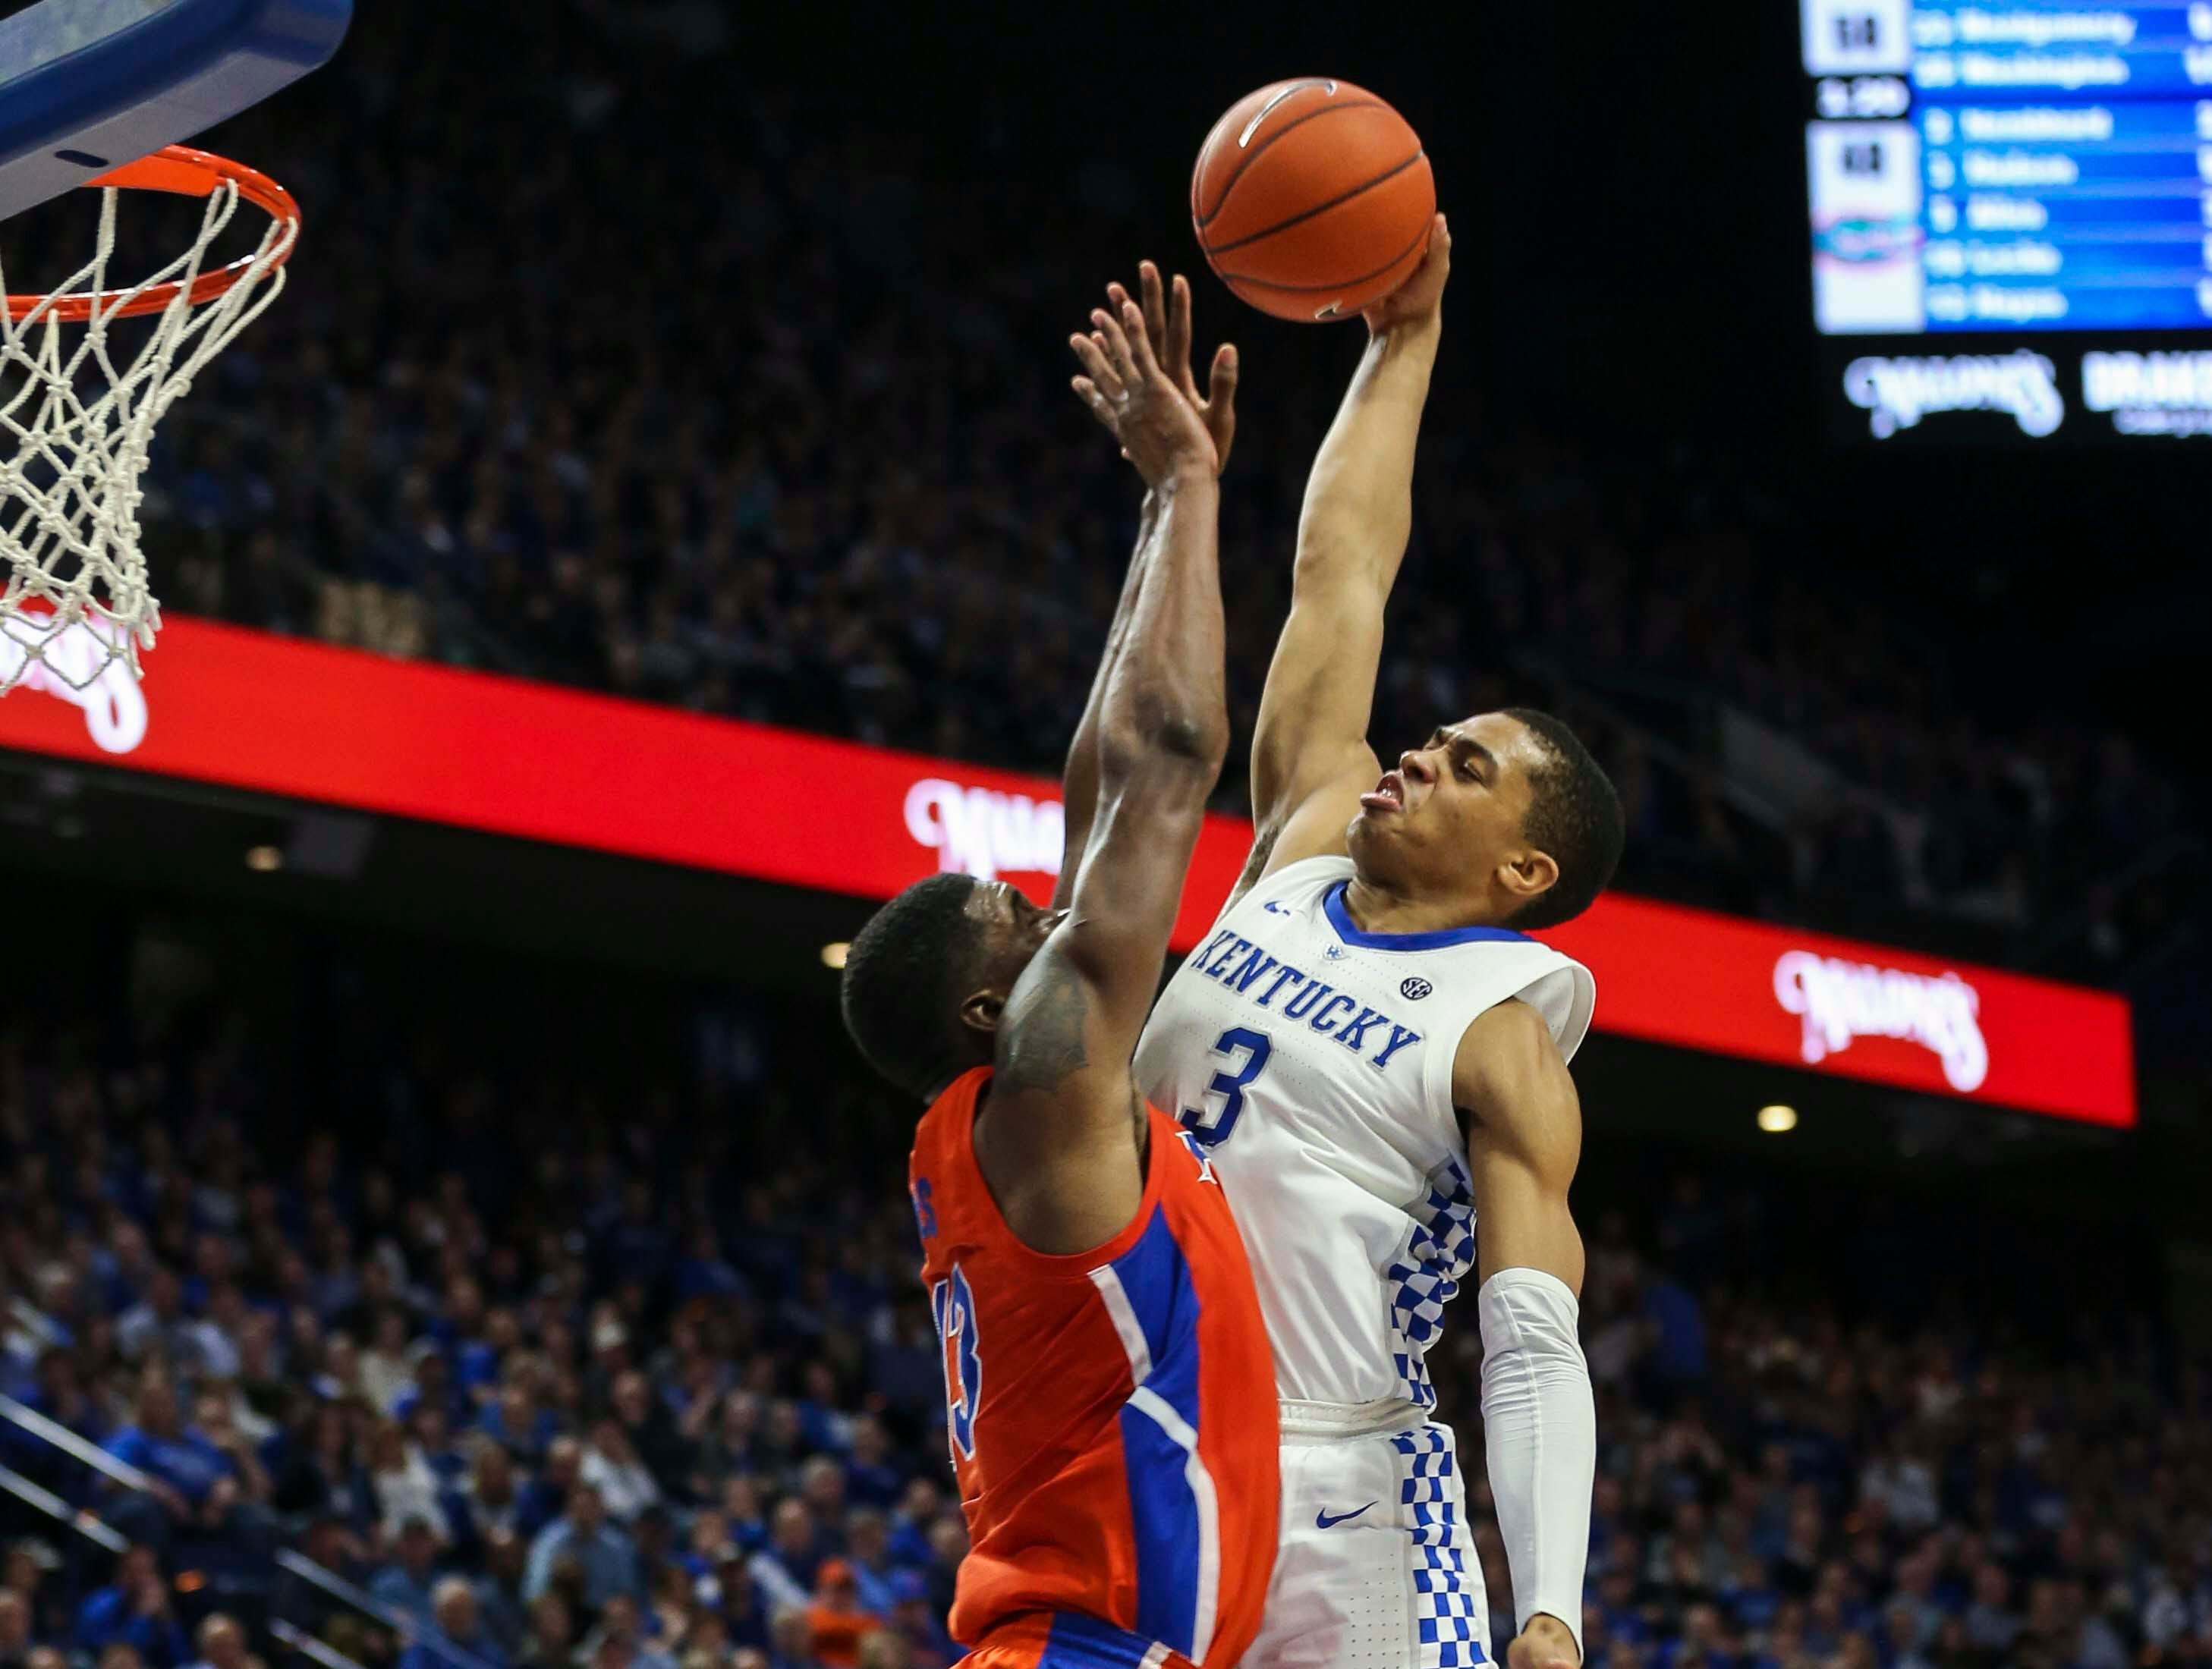 Kentucky's Keldon Johnson soared as he attempted a basket in the game against Florida. Johnson finished with 14 points and seven rebounds. March 9, 2019